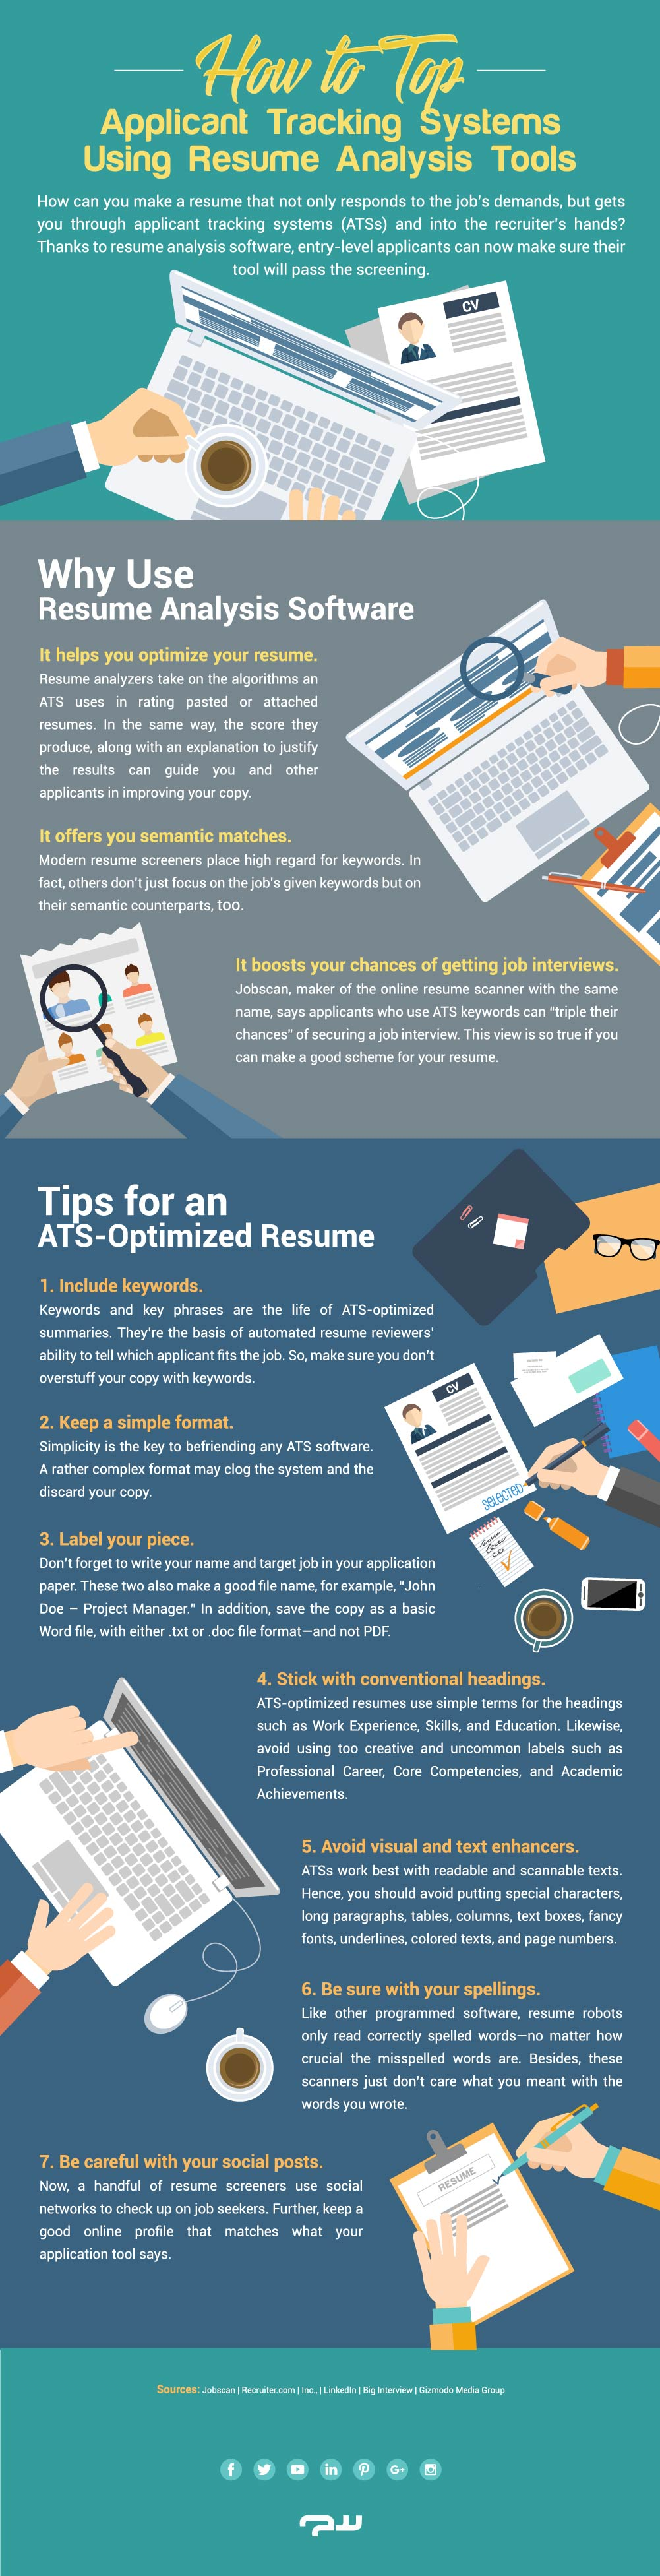 resume screening hacks to make your resume ats